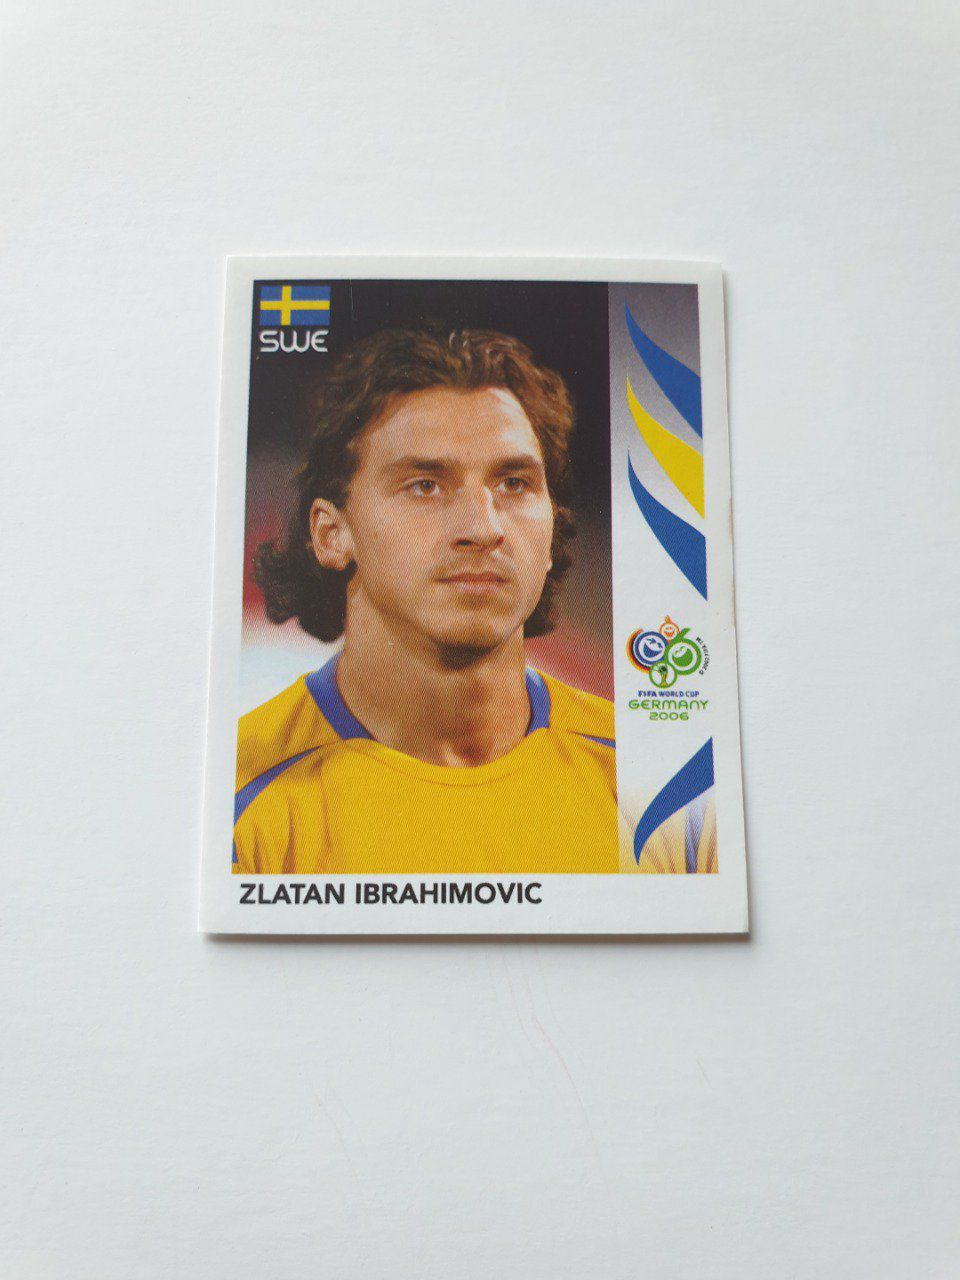 Zlatan Ibrahimovic made in Brazil sticker Germany 2006 n°166